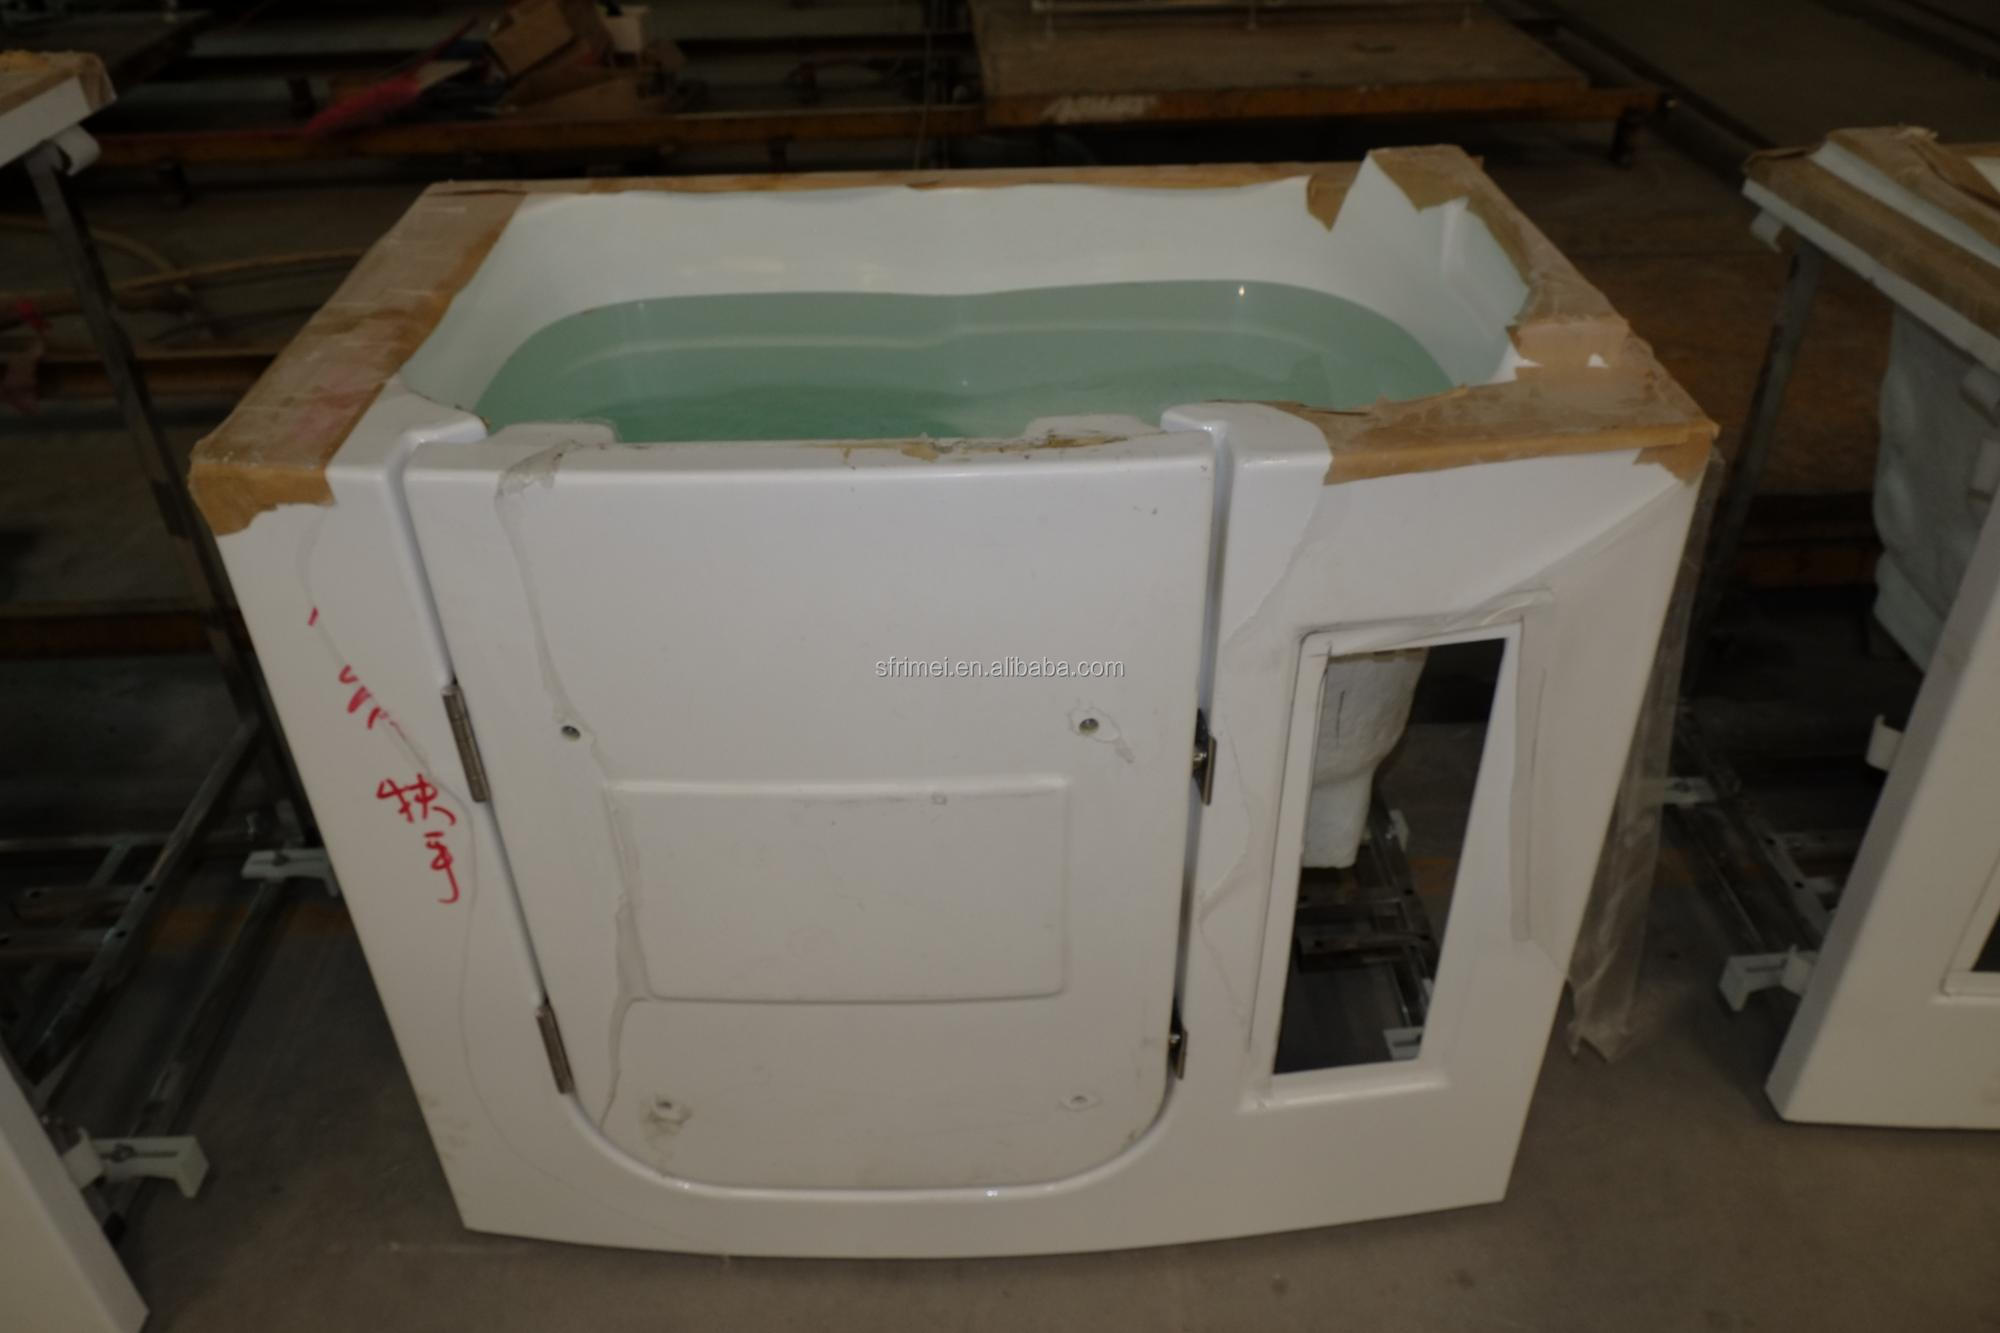 Handicap Tub Seat, Handicap Tub Seat Suppliers and Manufacturers at ...